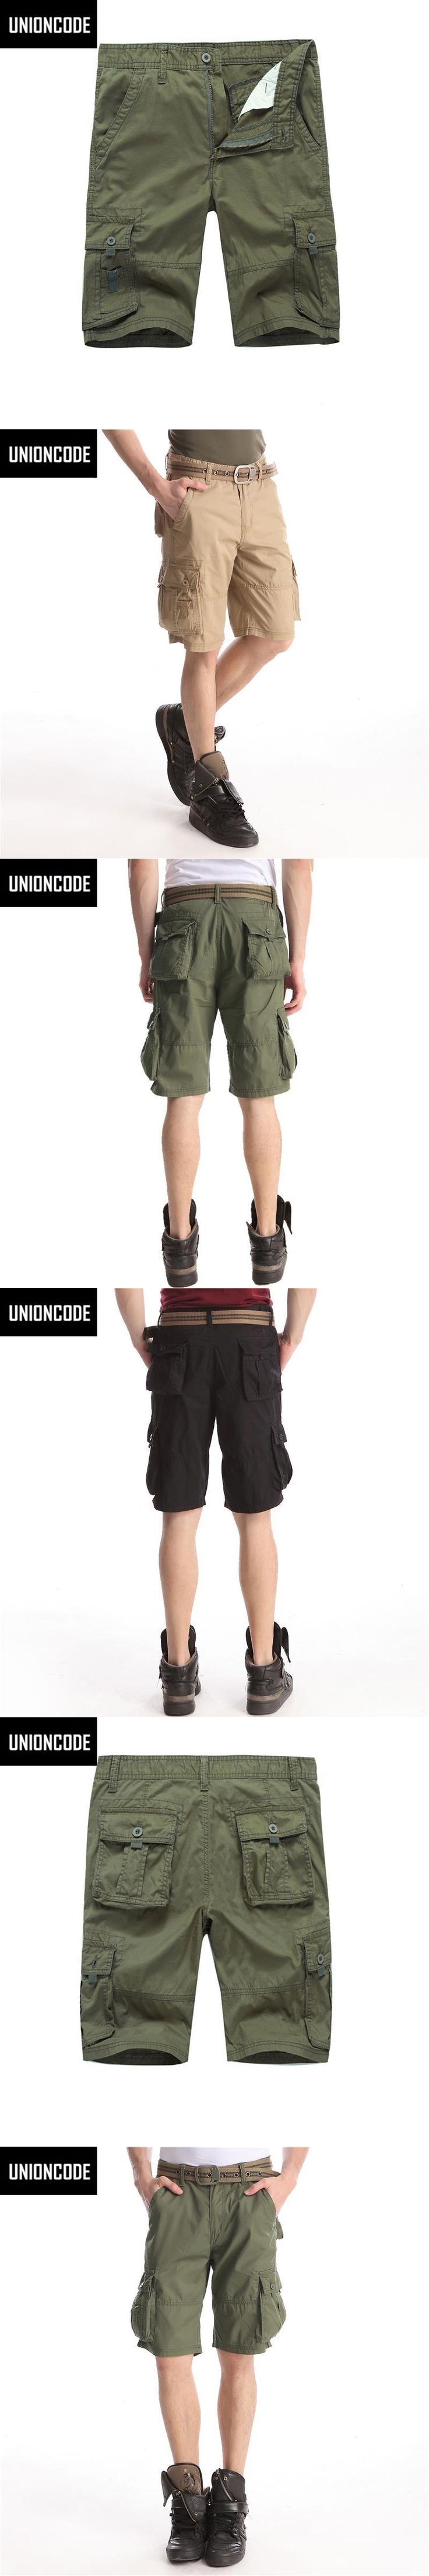 Cargo Shorts Hot Sale Flat Military Knee Length Loose Cotton Pantalon Corto Hombre Male Army Work Casual Shorts For Men 1008